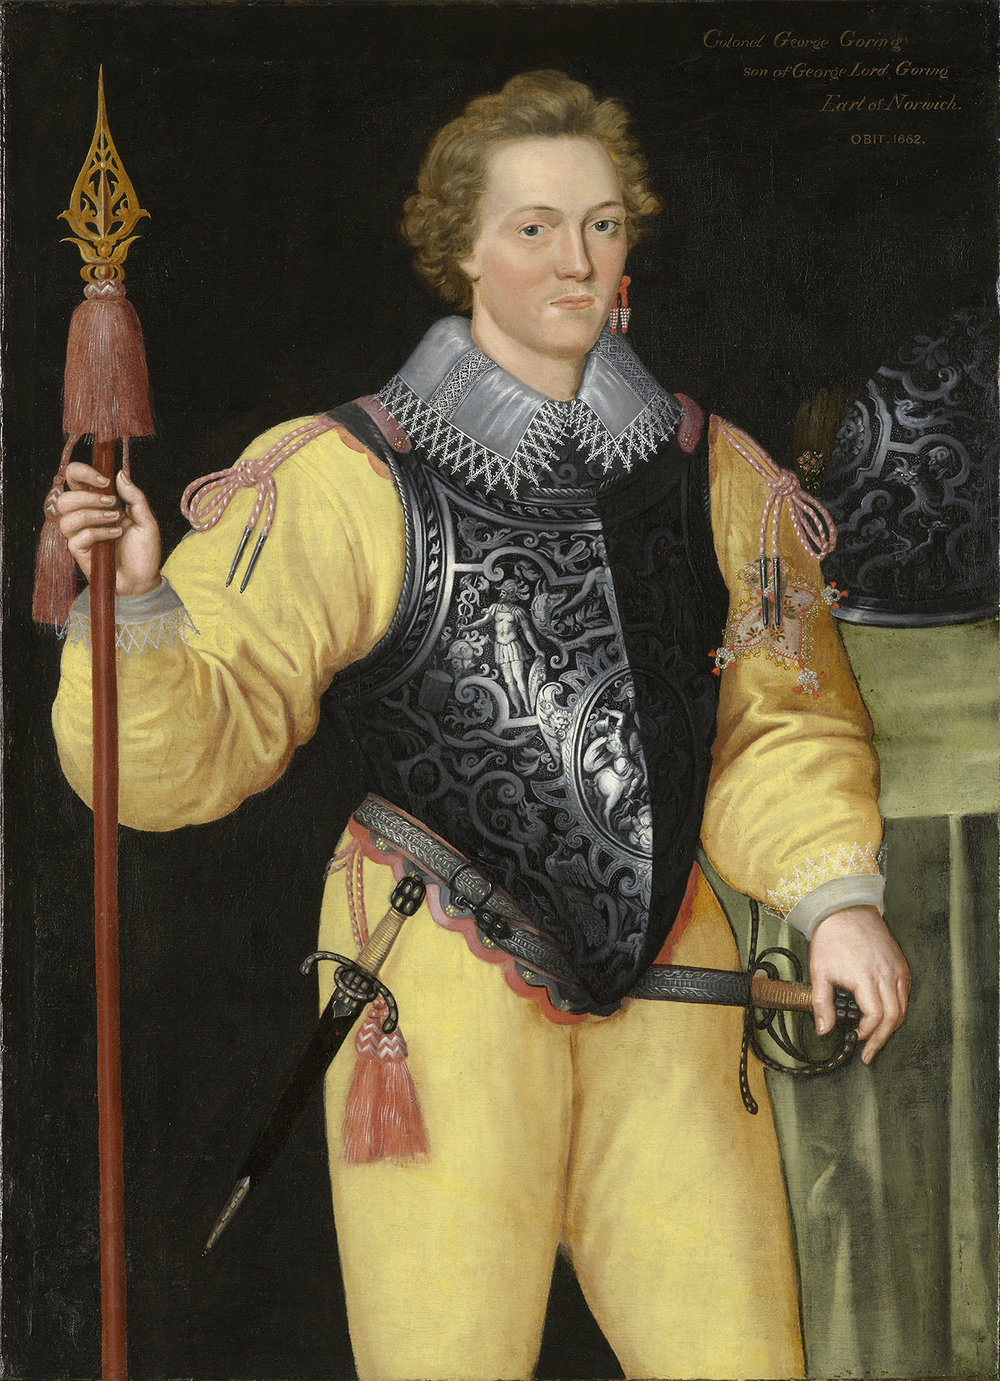 British School, Portrait of a Gentleman Wearing a Breastplate, circa 1585–90, oil on canvas, 46 1/2 x 33 5/8 in., Gift of Mr. and Mrs. James MacLamroc